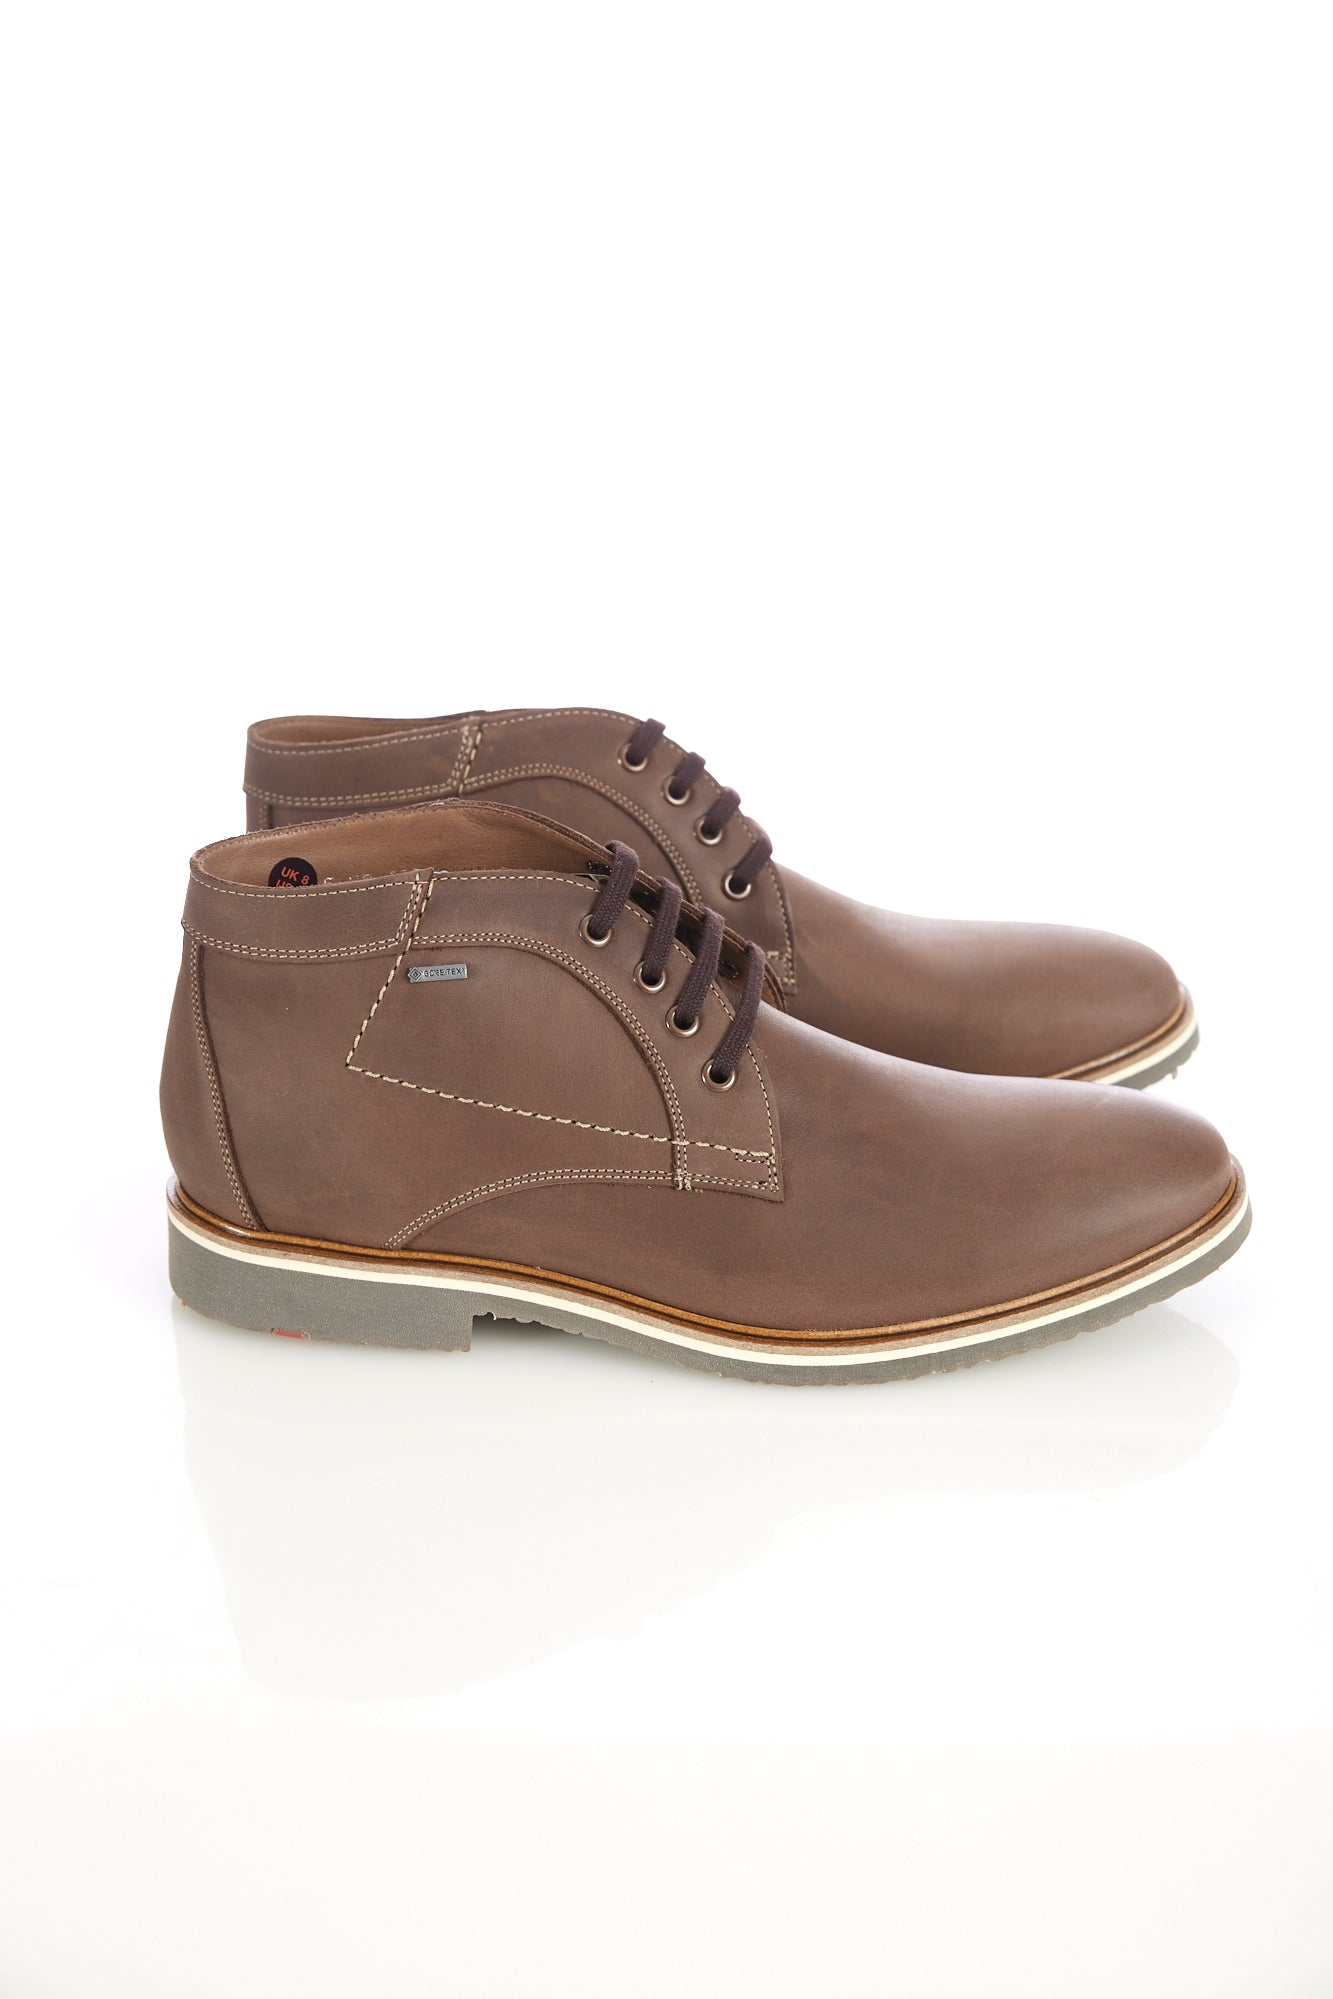 Lloyd 'Vallett' Brown Leather Gore-Tex Chukka Boot - Shoes - Lloyd - LALONDE's